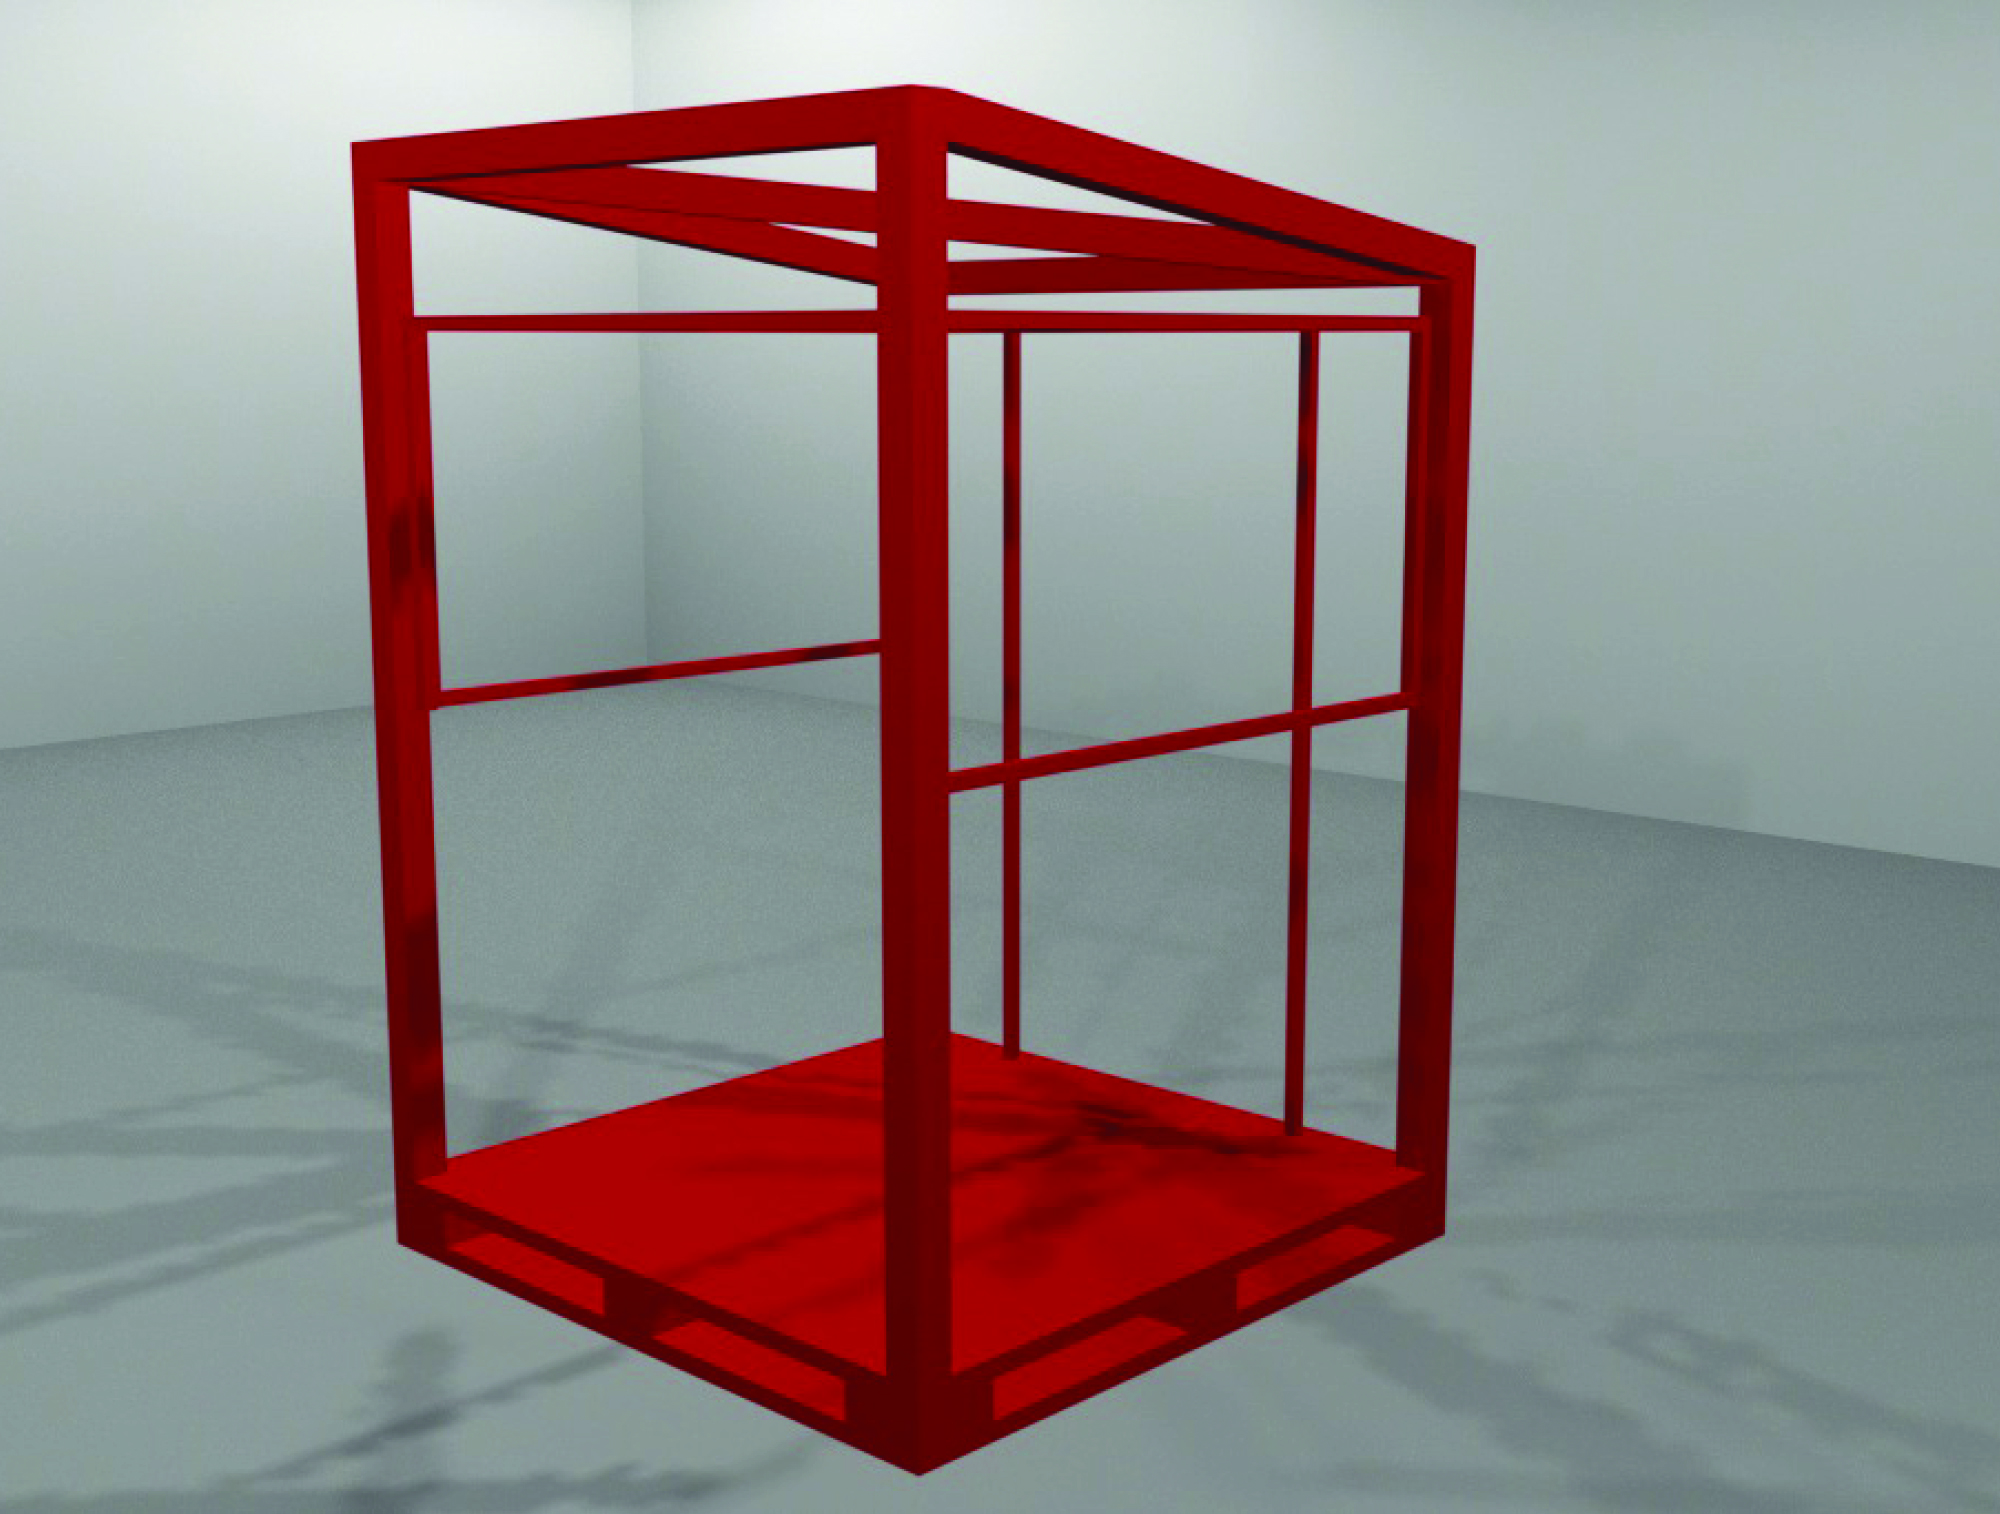 cm stand 3D render 2